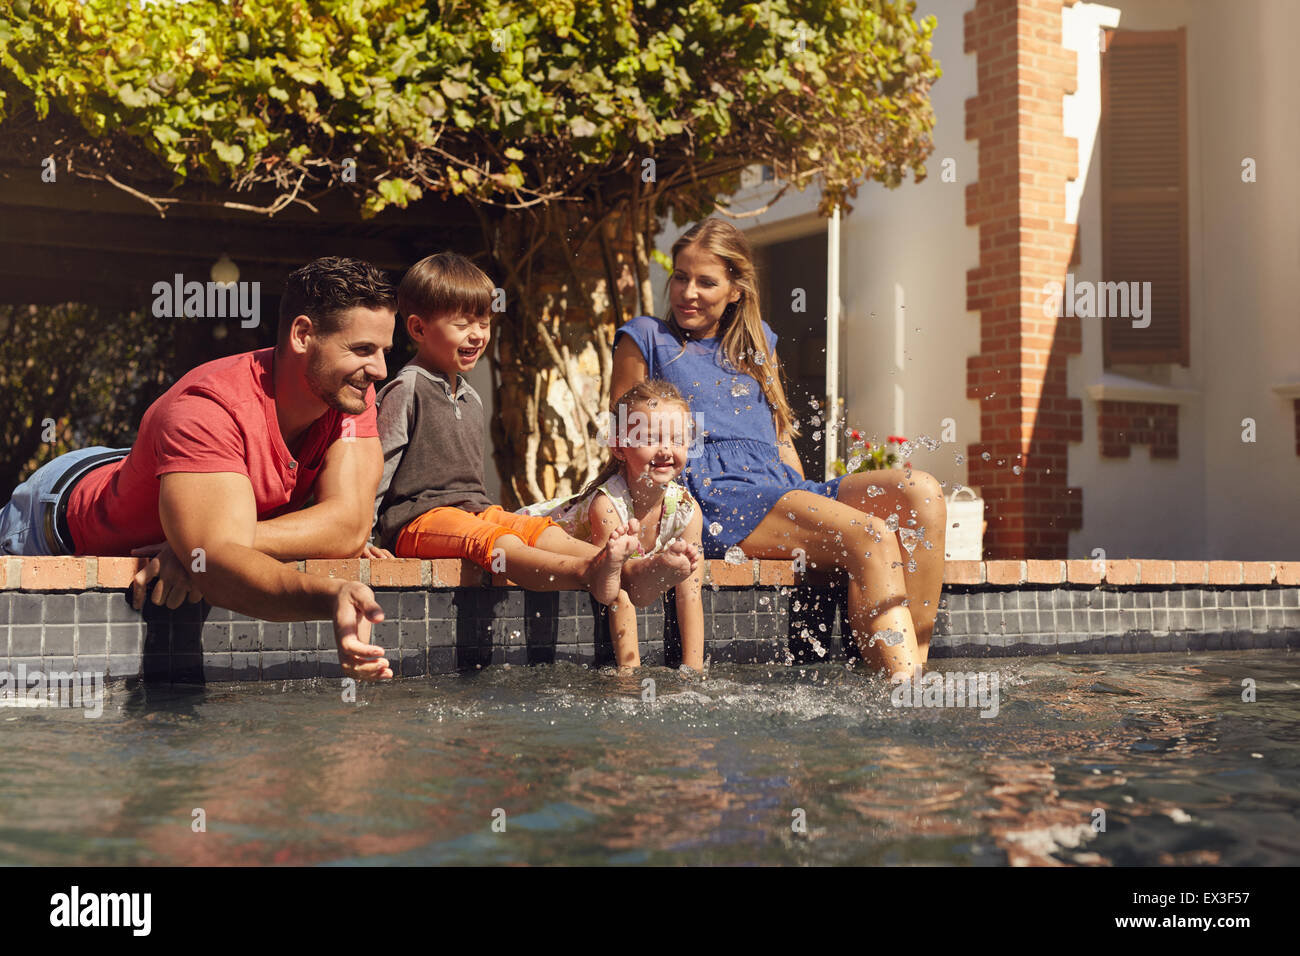 Outdoor shot of happy young family splashing water with hands and legs while sitting on edge of swimming pool. Family - Stock Image